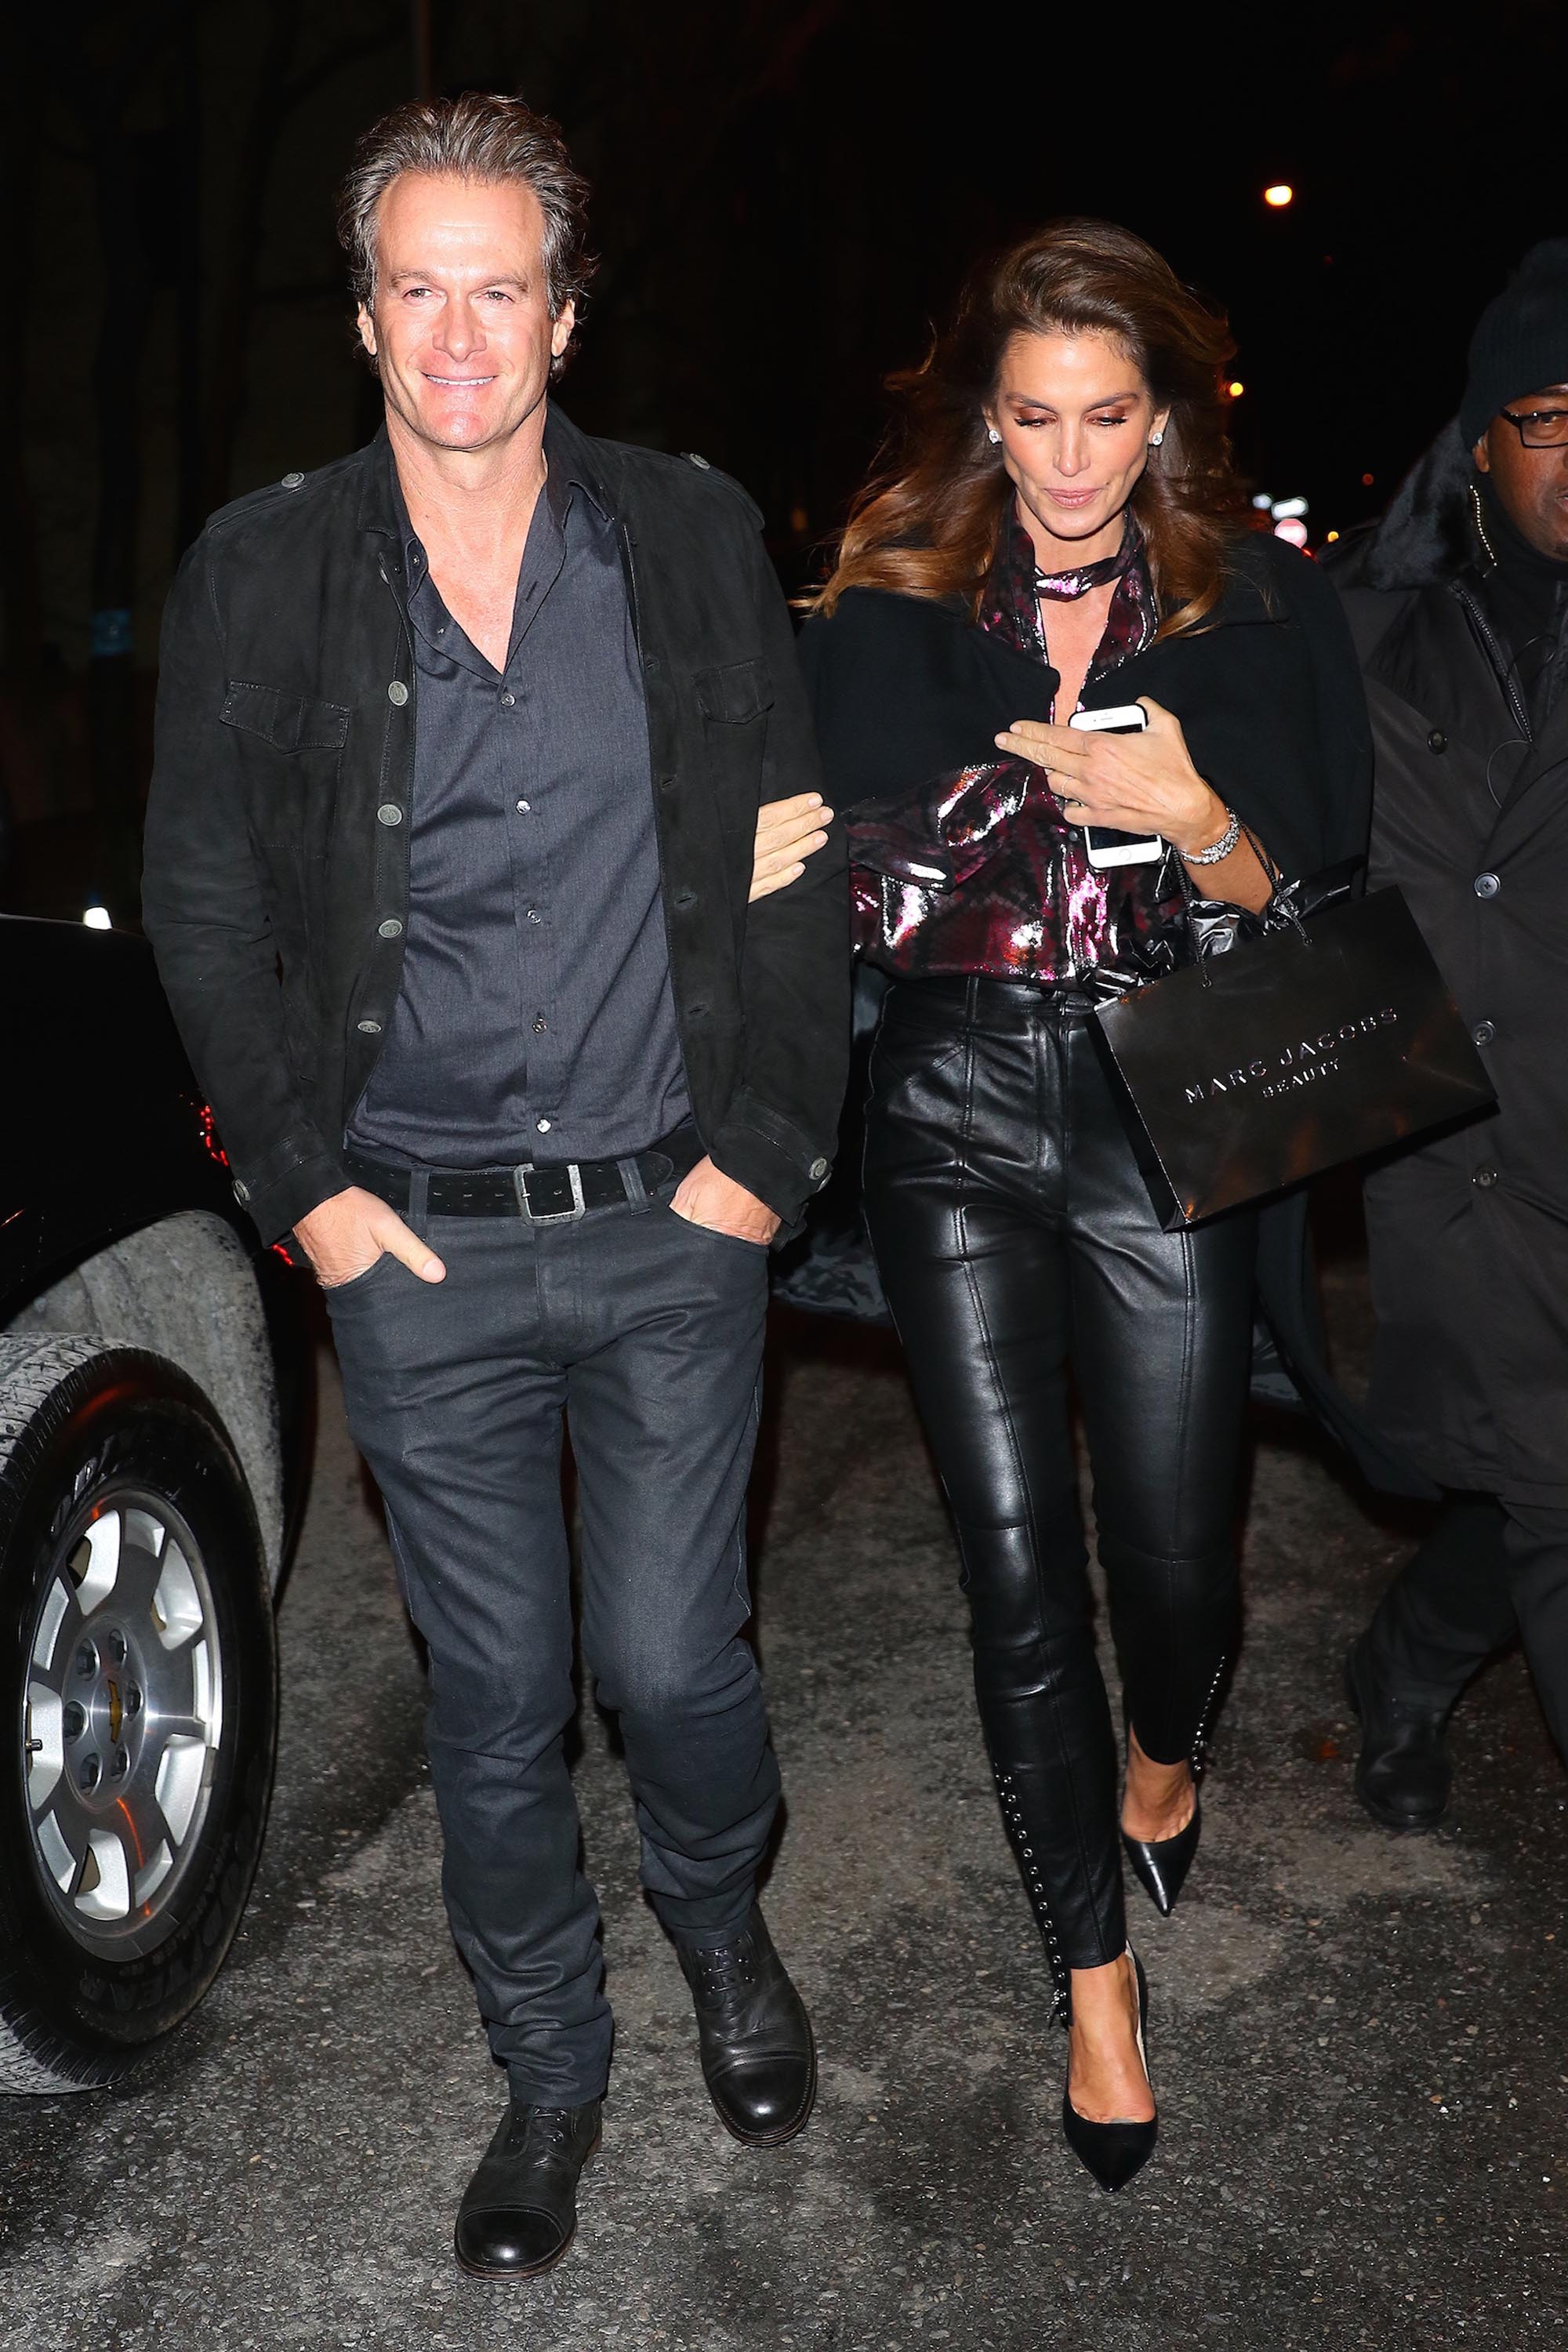 Cindy Crawford seen at the Marc Jacobs private party